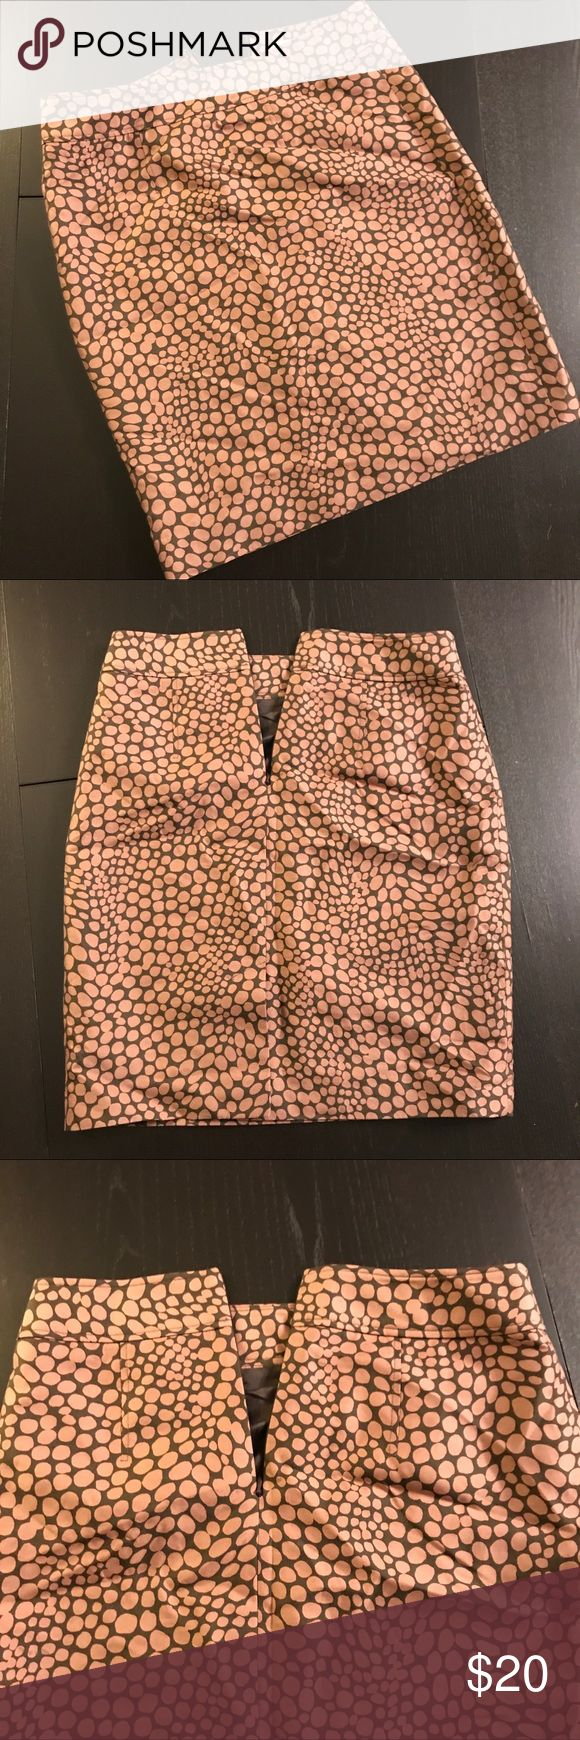 Stylish & Unique Business Skirt Great skirt to make your work wardrobe more fun! The dots are a pinkish-brown color. Lined with brown fabric/slip.  Length of skirt is 21 inches. In very good used condition. From a smoke-free home. LOFT Skirts